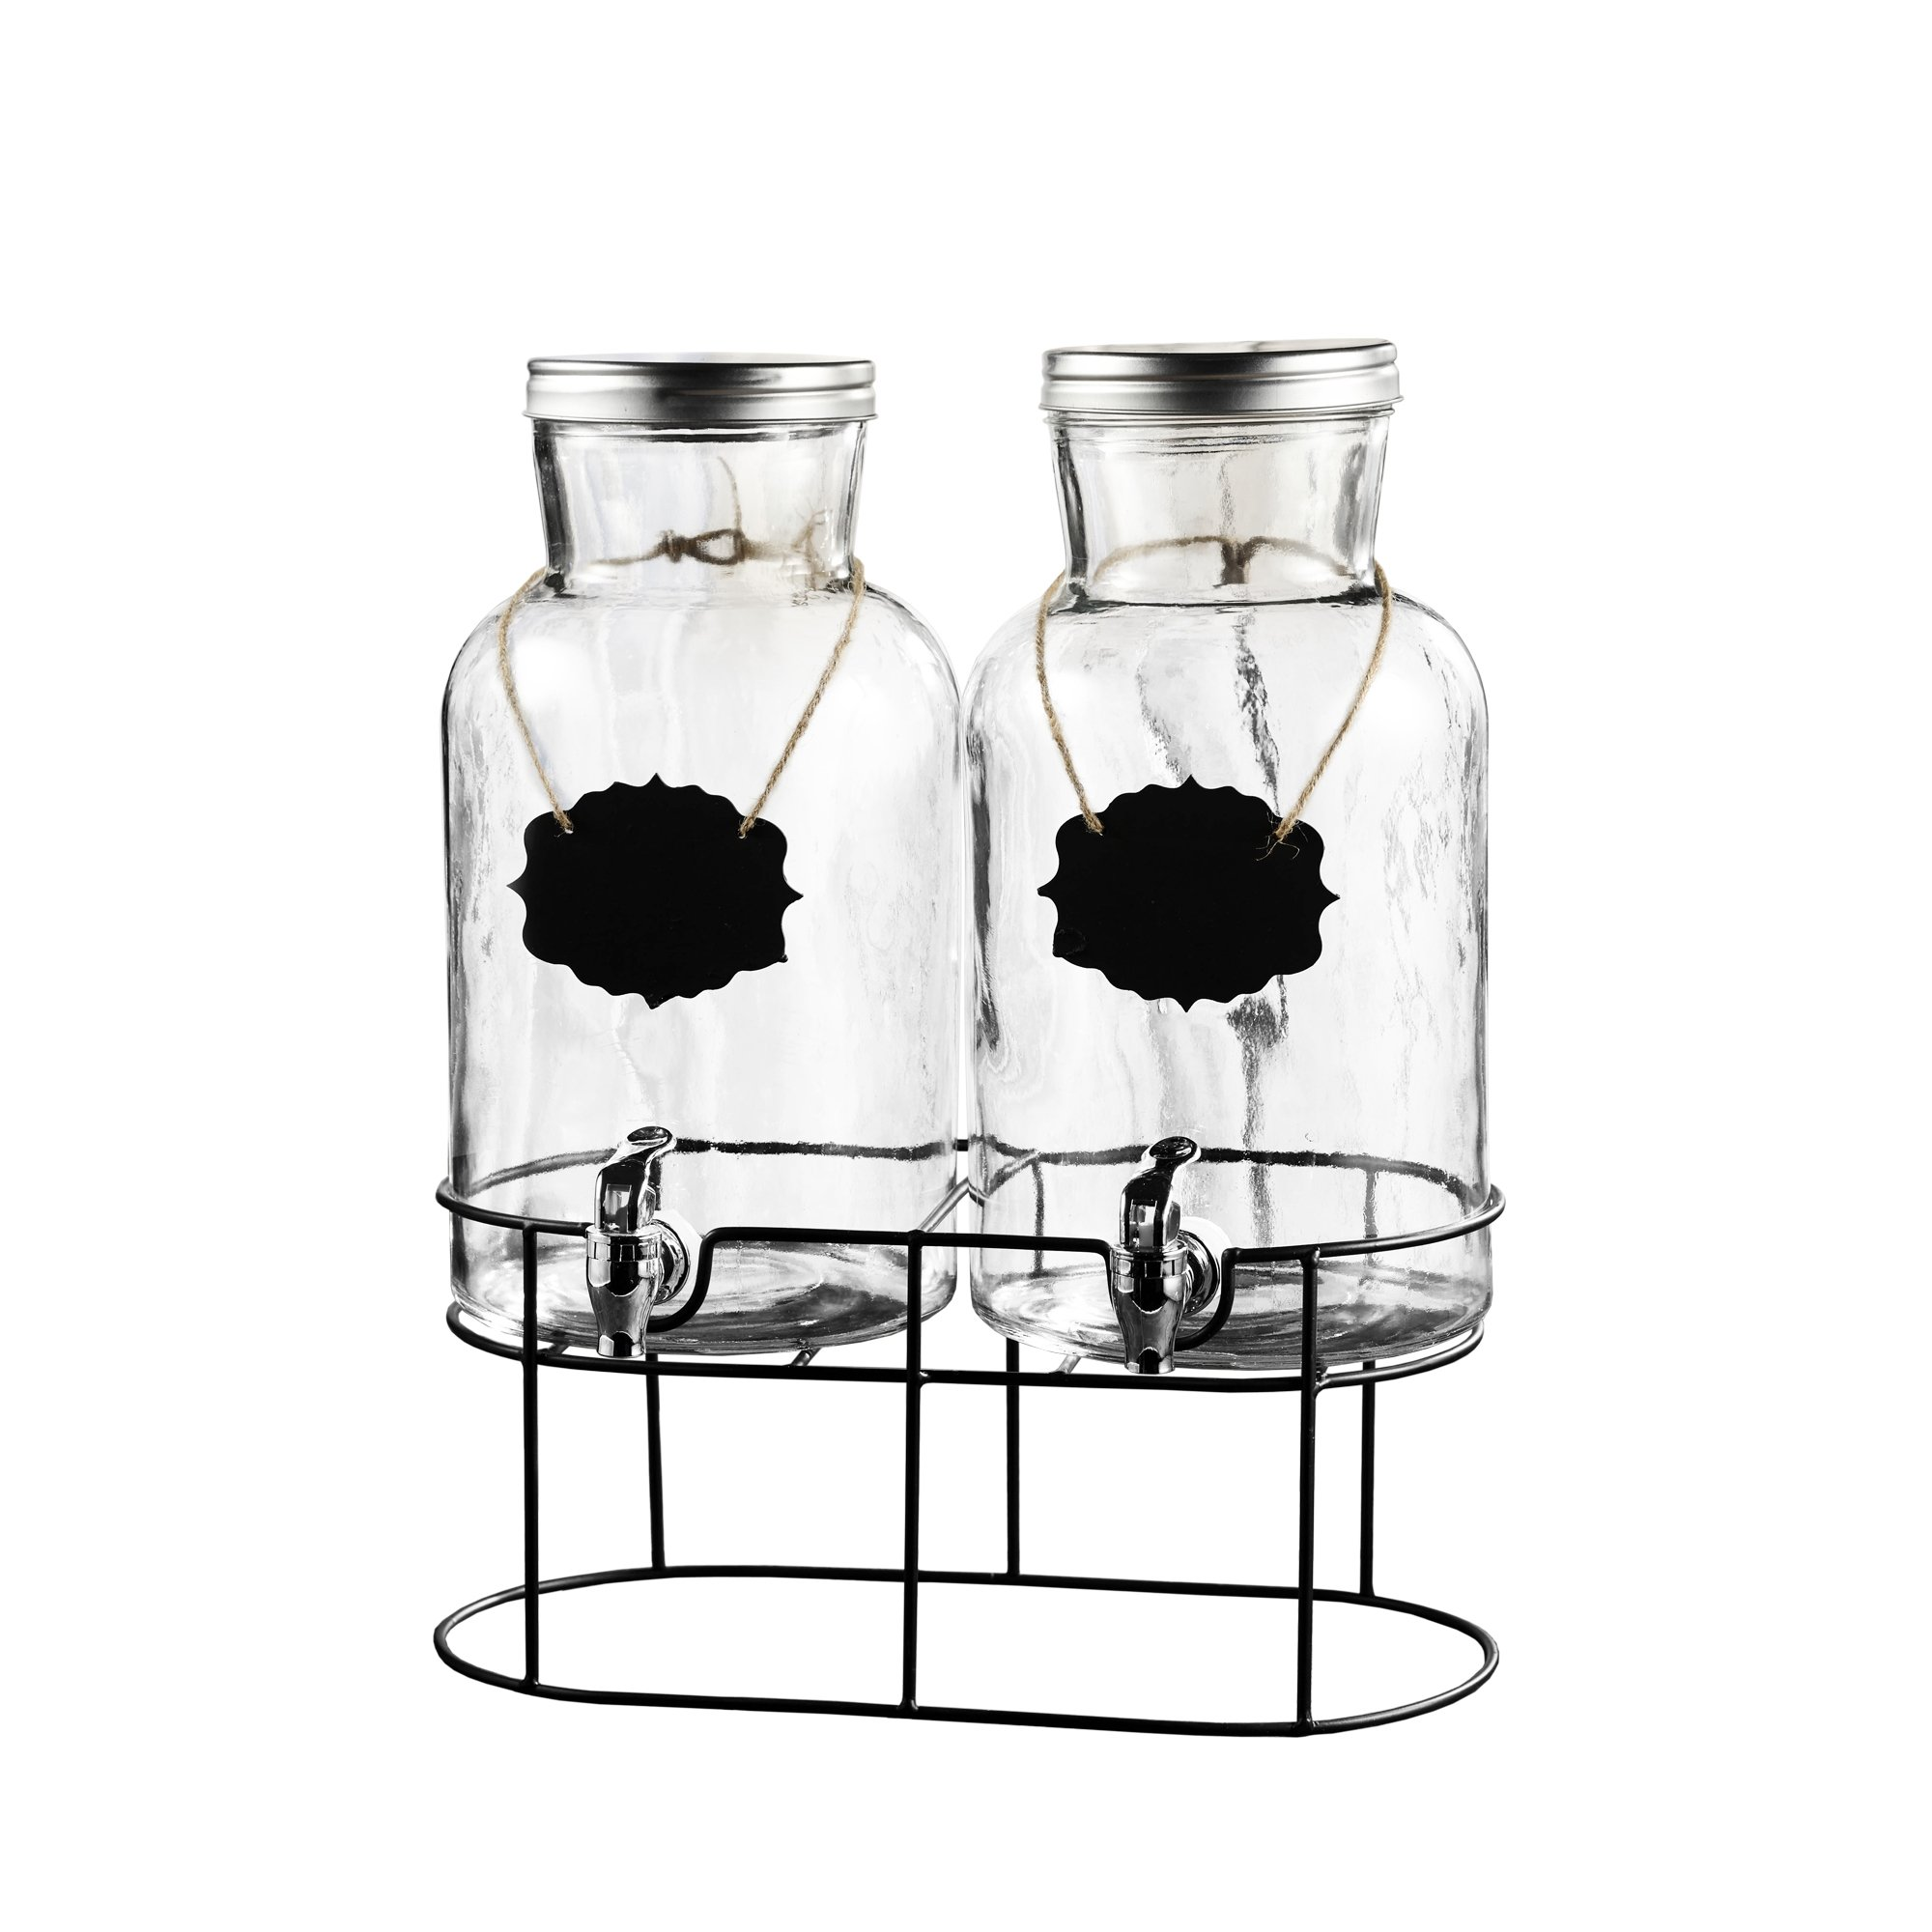 Style Setter Sierra 210439-GB 1.2 Gallon Each 2 Piece Glass Beverage Dispenser Set with Metal Stand and Lid, 15x7.5x16.5, Clear